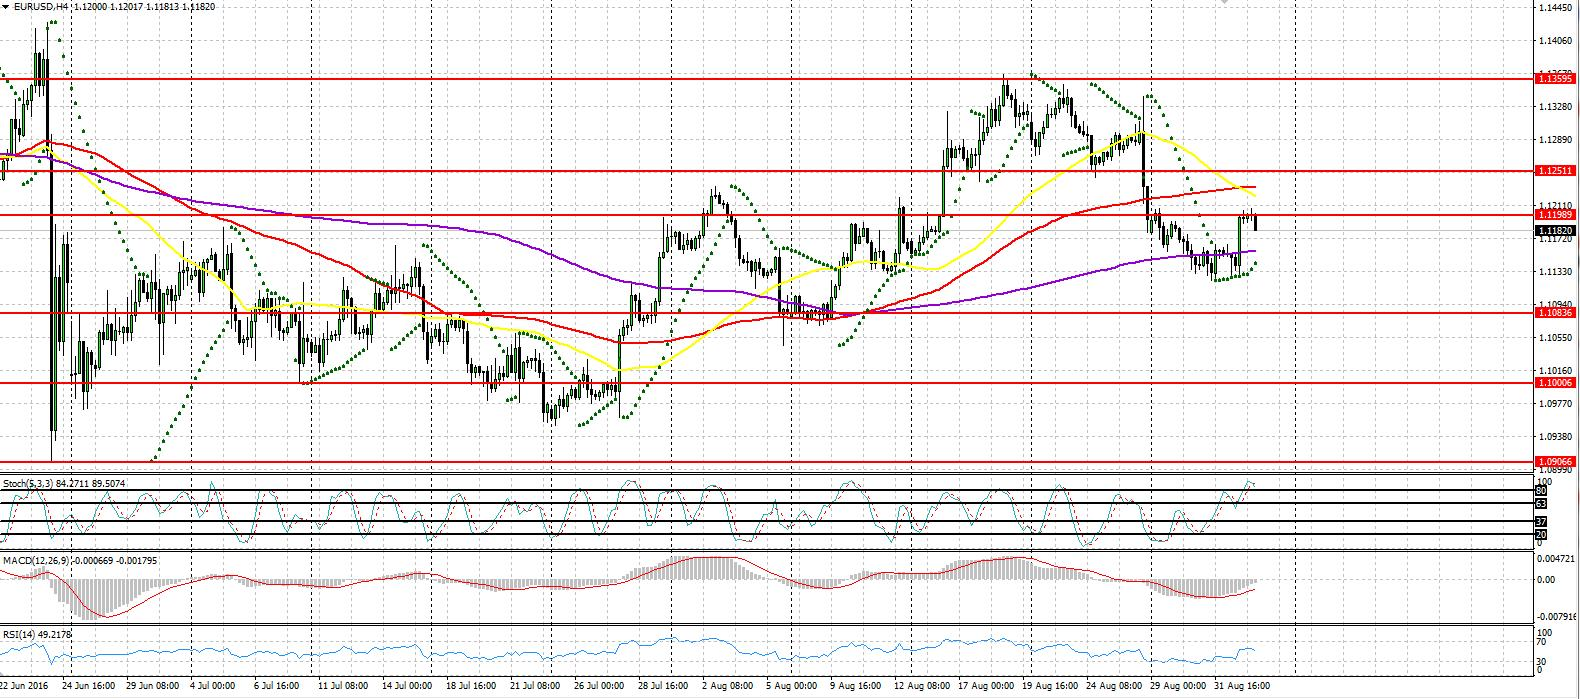 EURUSD technical outlook in NFP